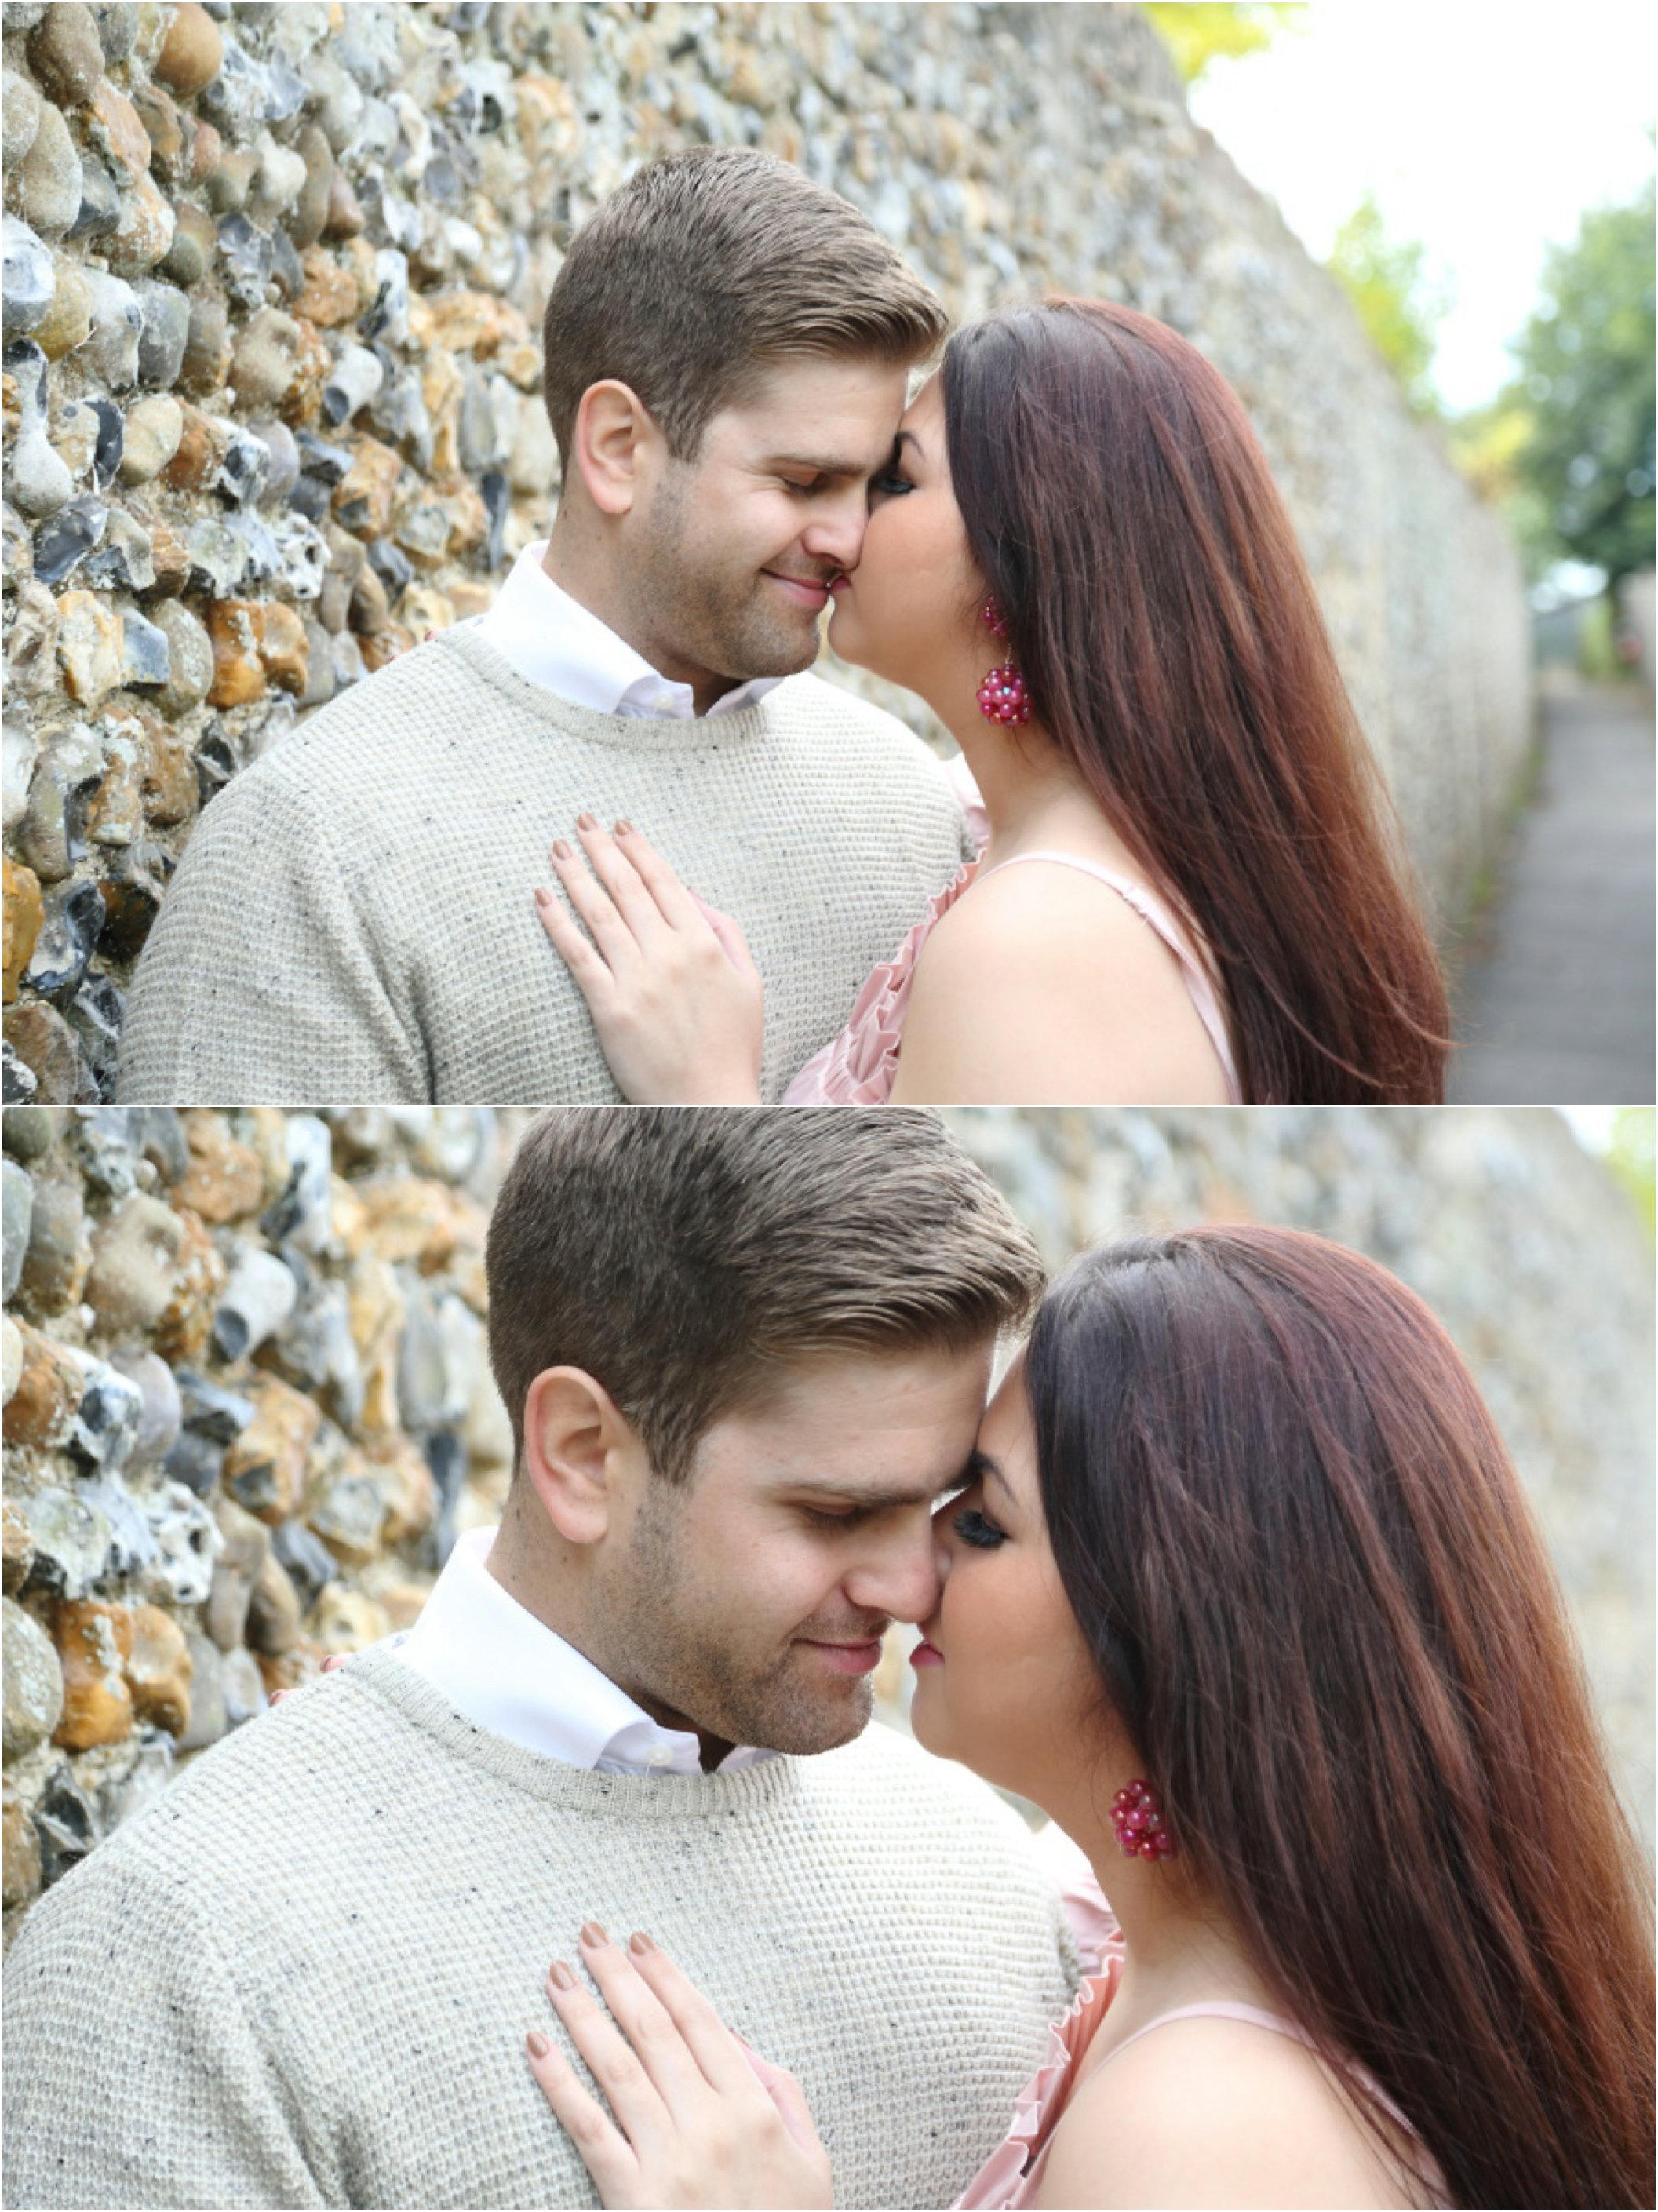 loving couple at romantic fun engagement photo shoot